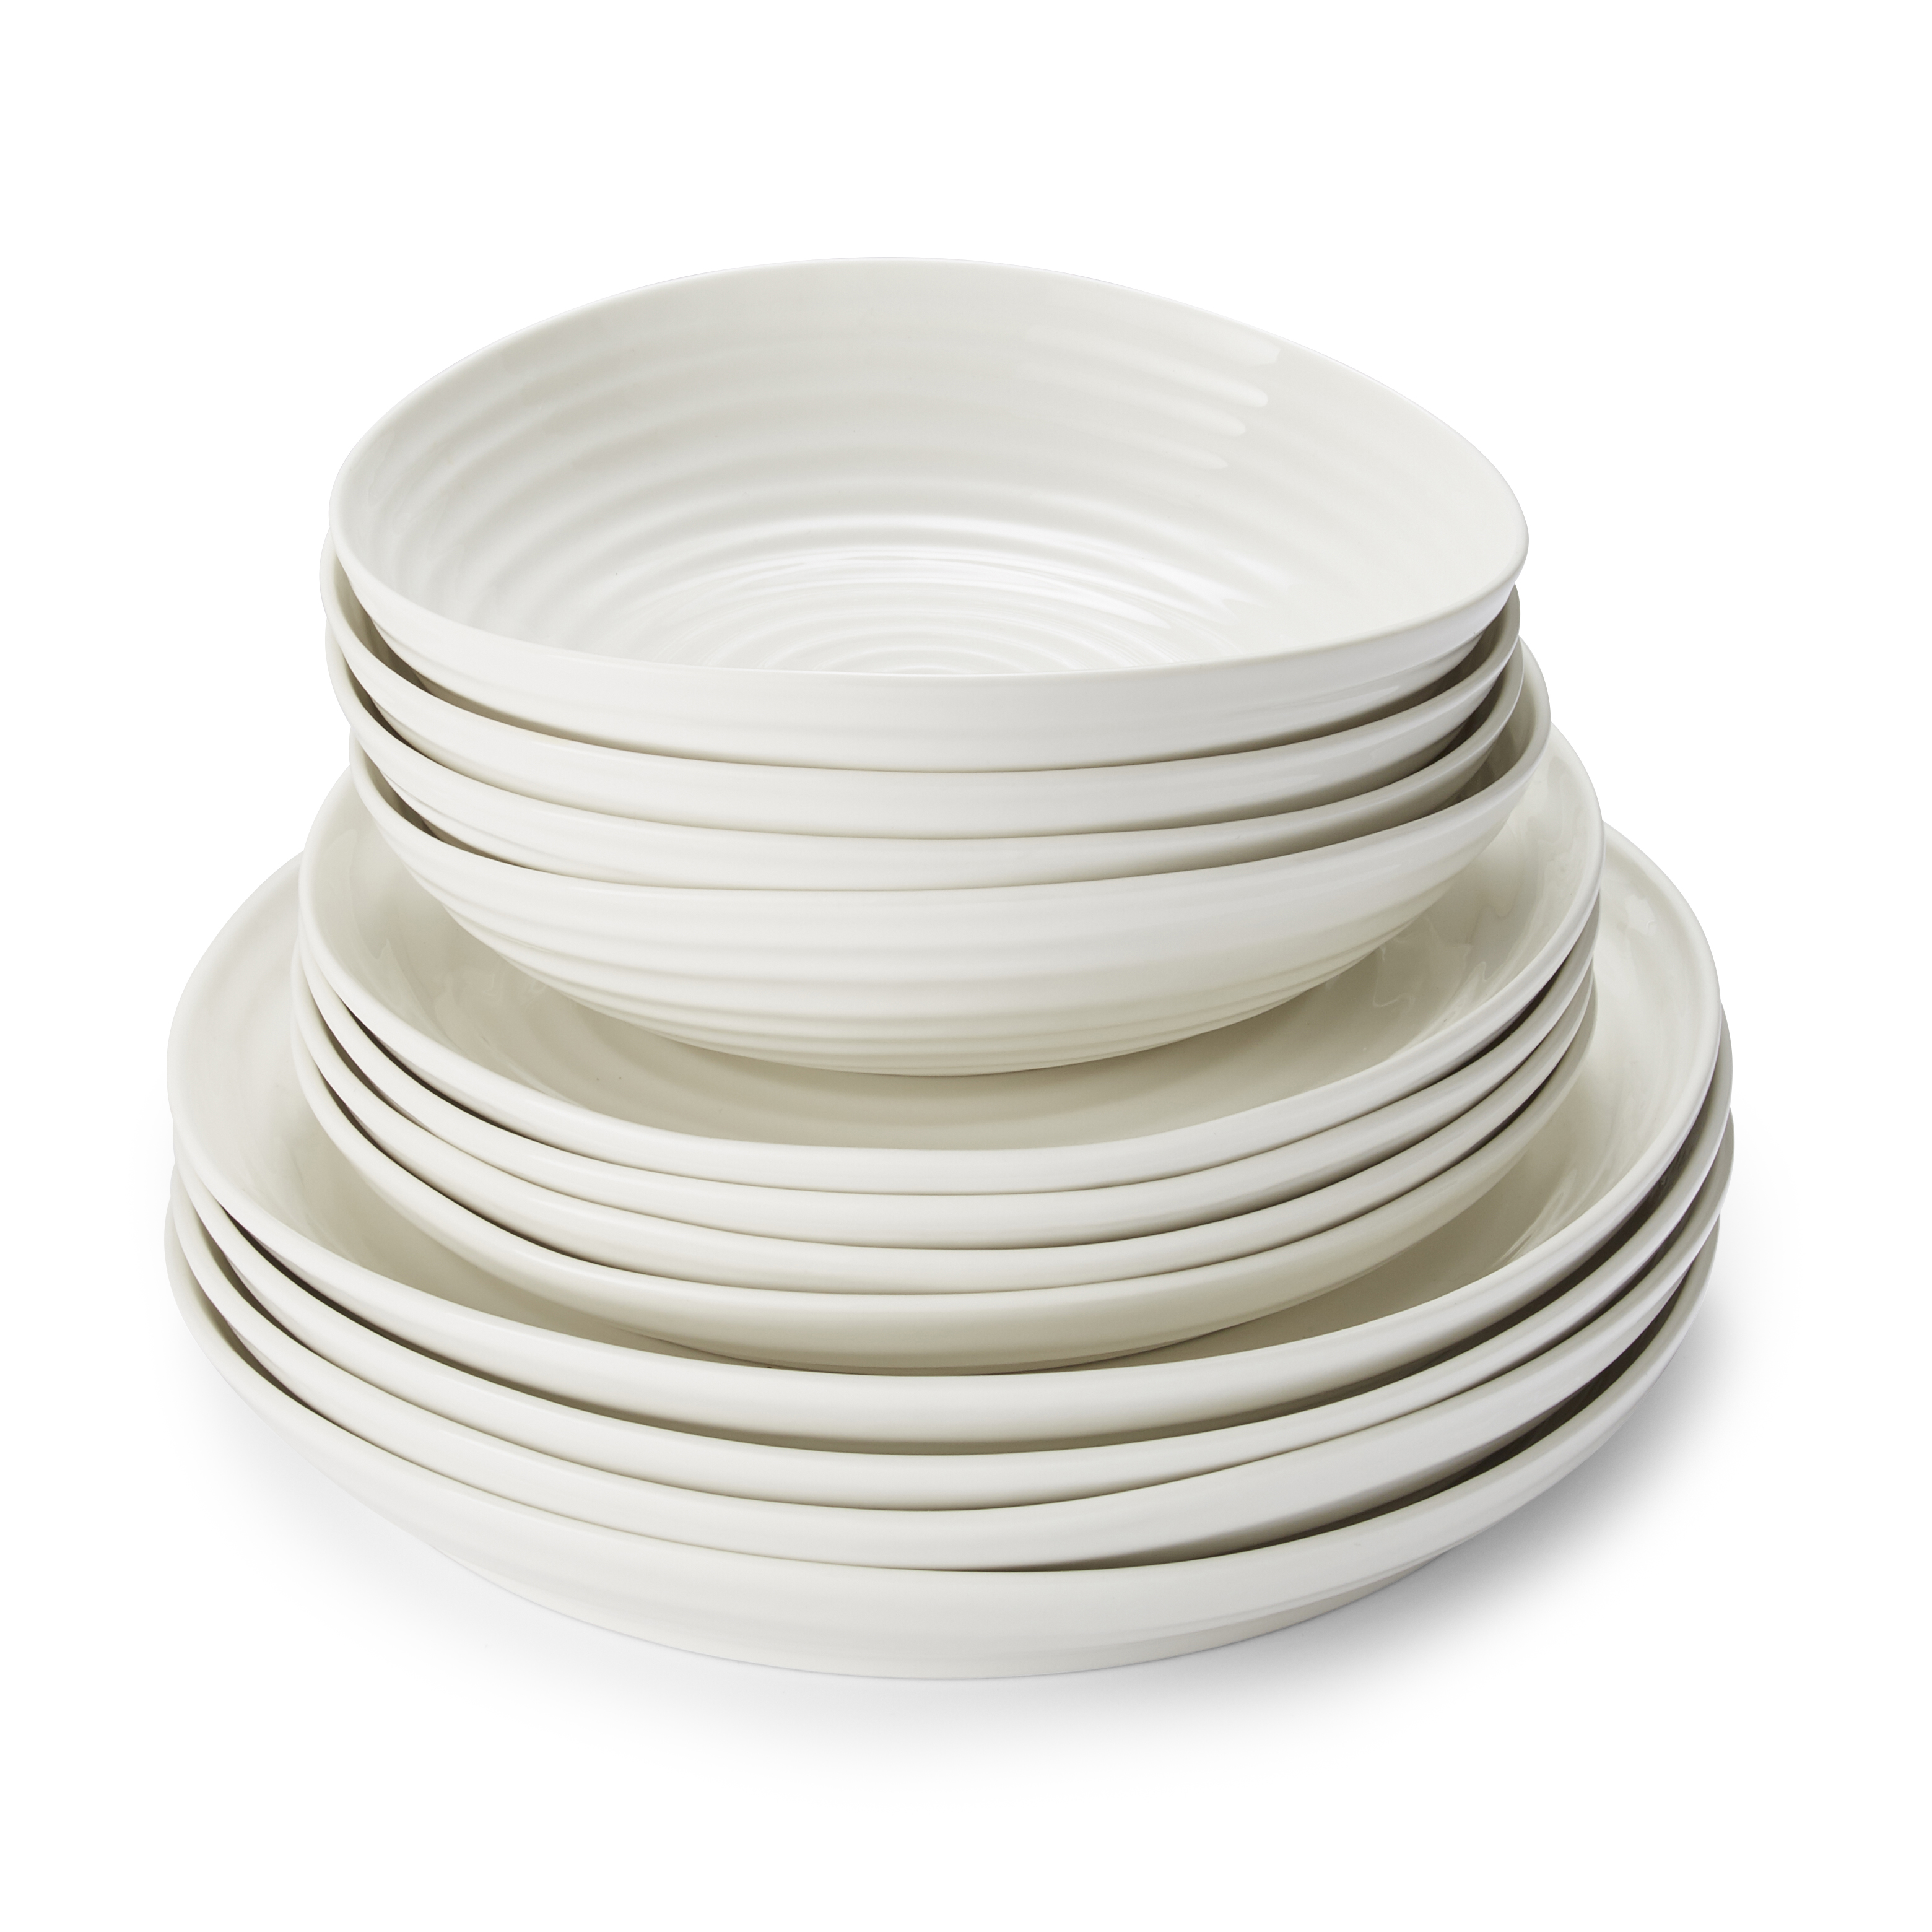 Portmeirion Sophie Conran White 12 Piece Set Coupe Shape image number 1